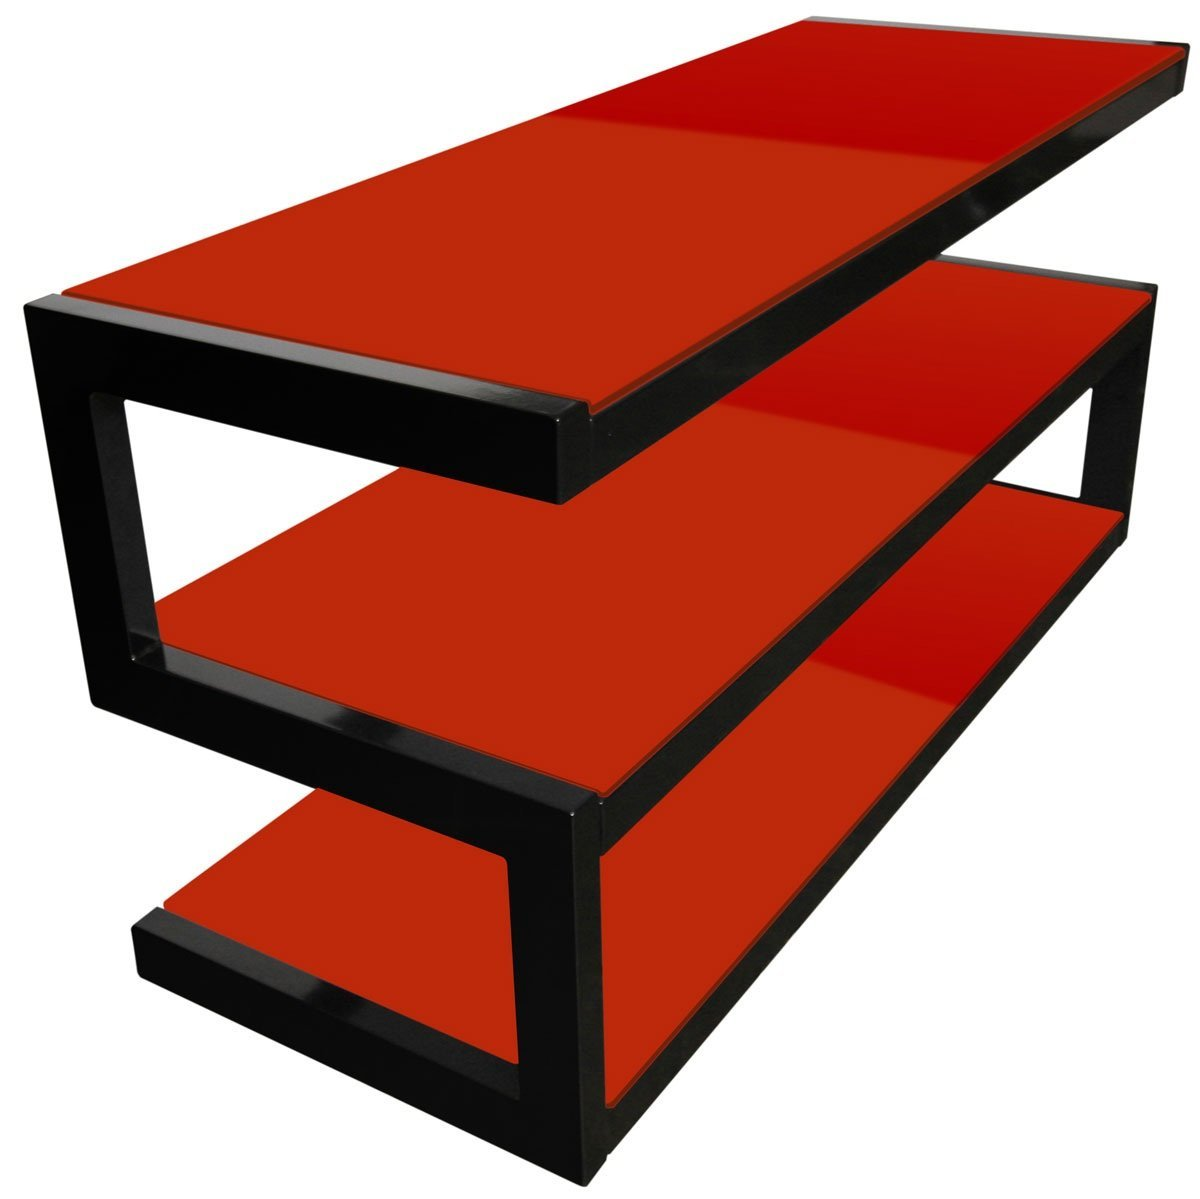 norstone esse 3 shelf av tv stand with glass red 1100mm